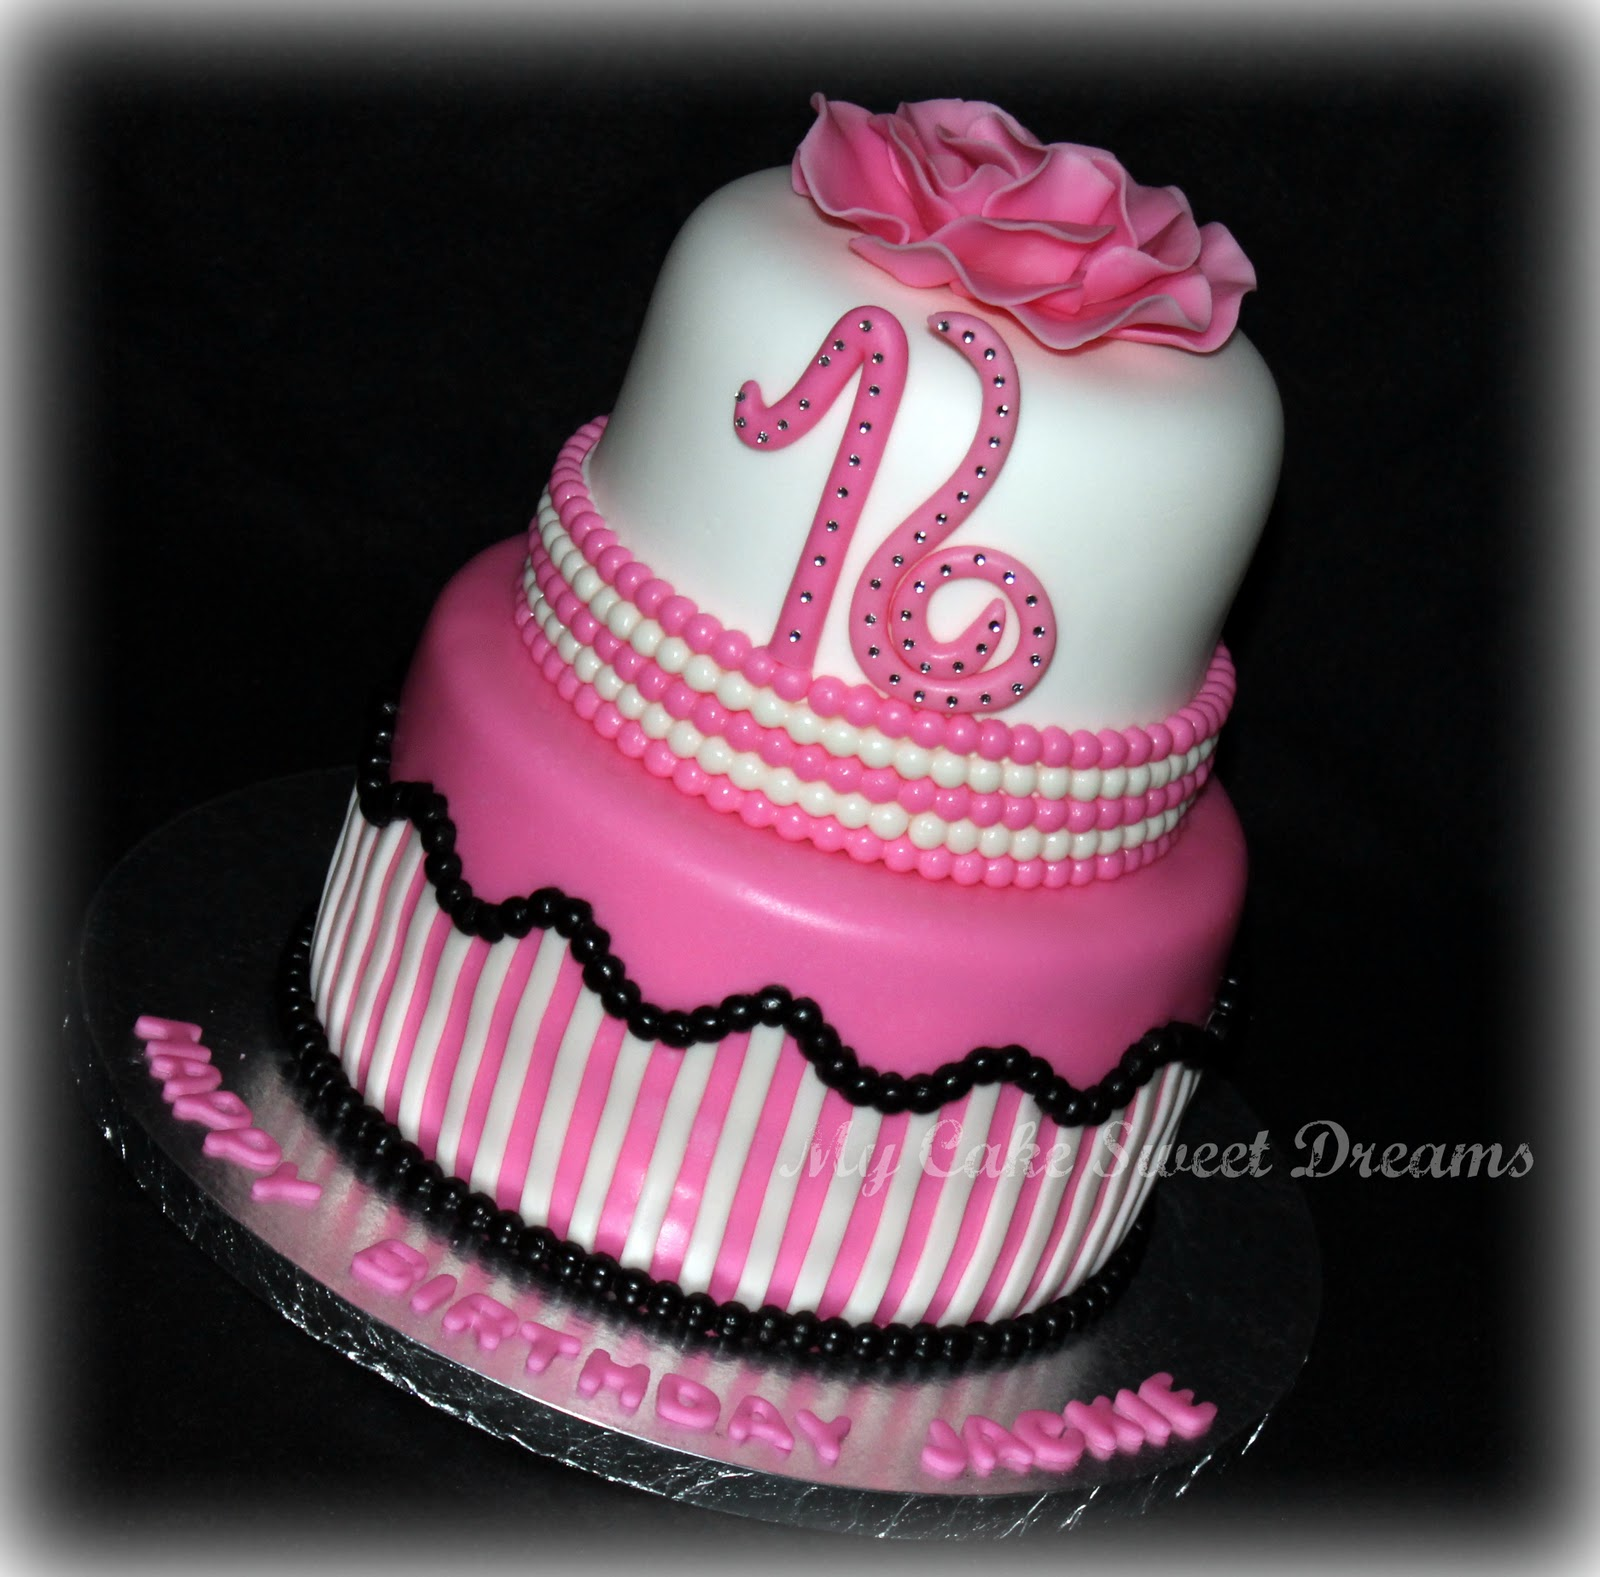 Sweet Cake Images : My Cake Sweet Dreams: Sweet 16 Birthday Cake